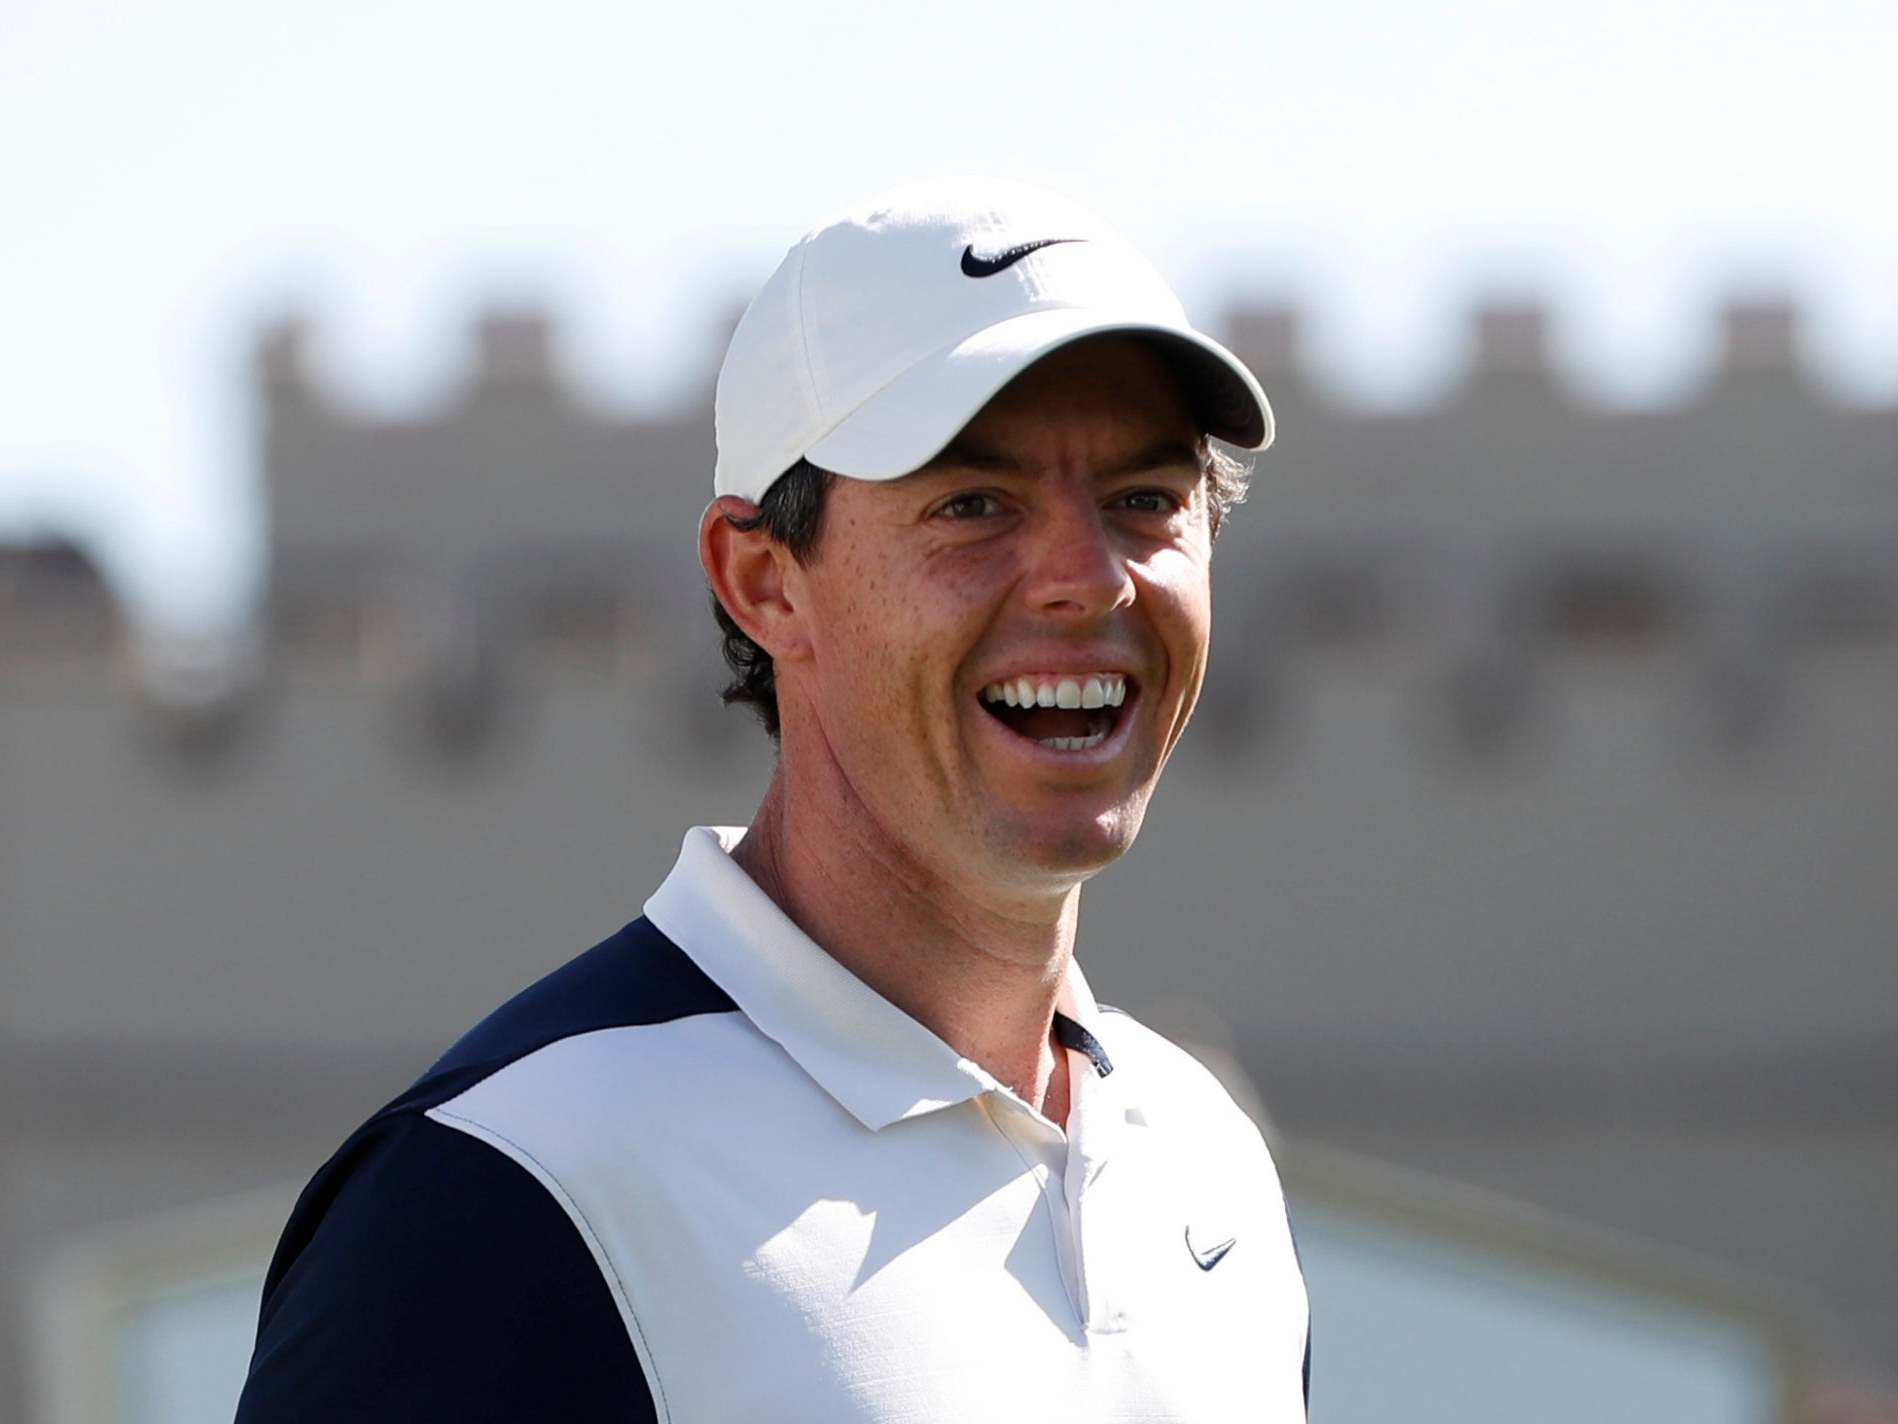 BMW PGA Championship 2019: Rory McIlroy outlines goals for remainder of season - starting at Wentworth